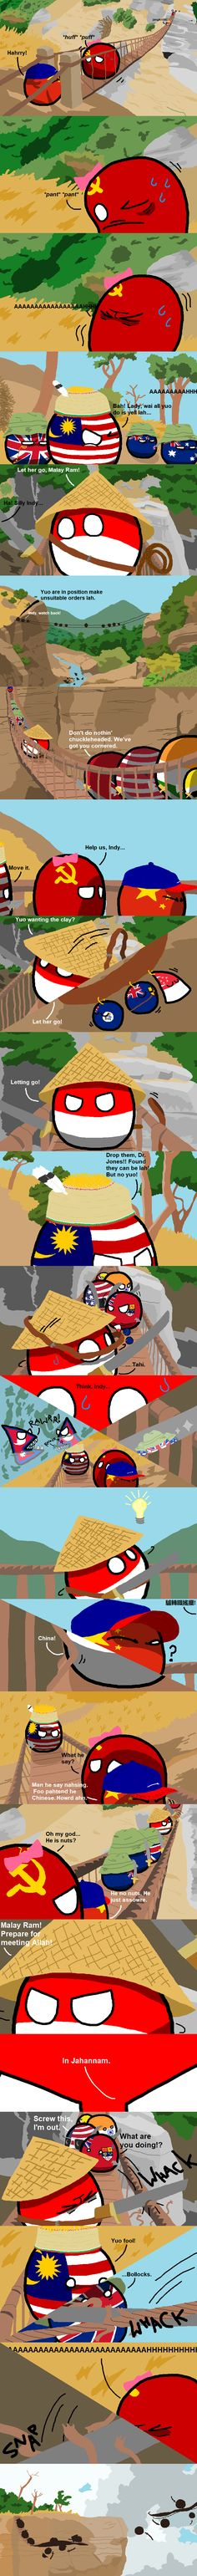 Indonesia Jones and the Temple of Batu | Polandballs Countryballs